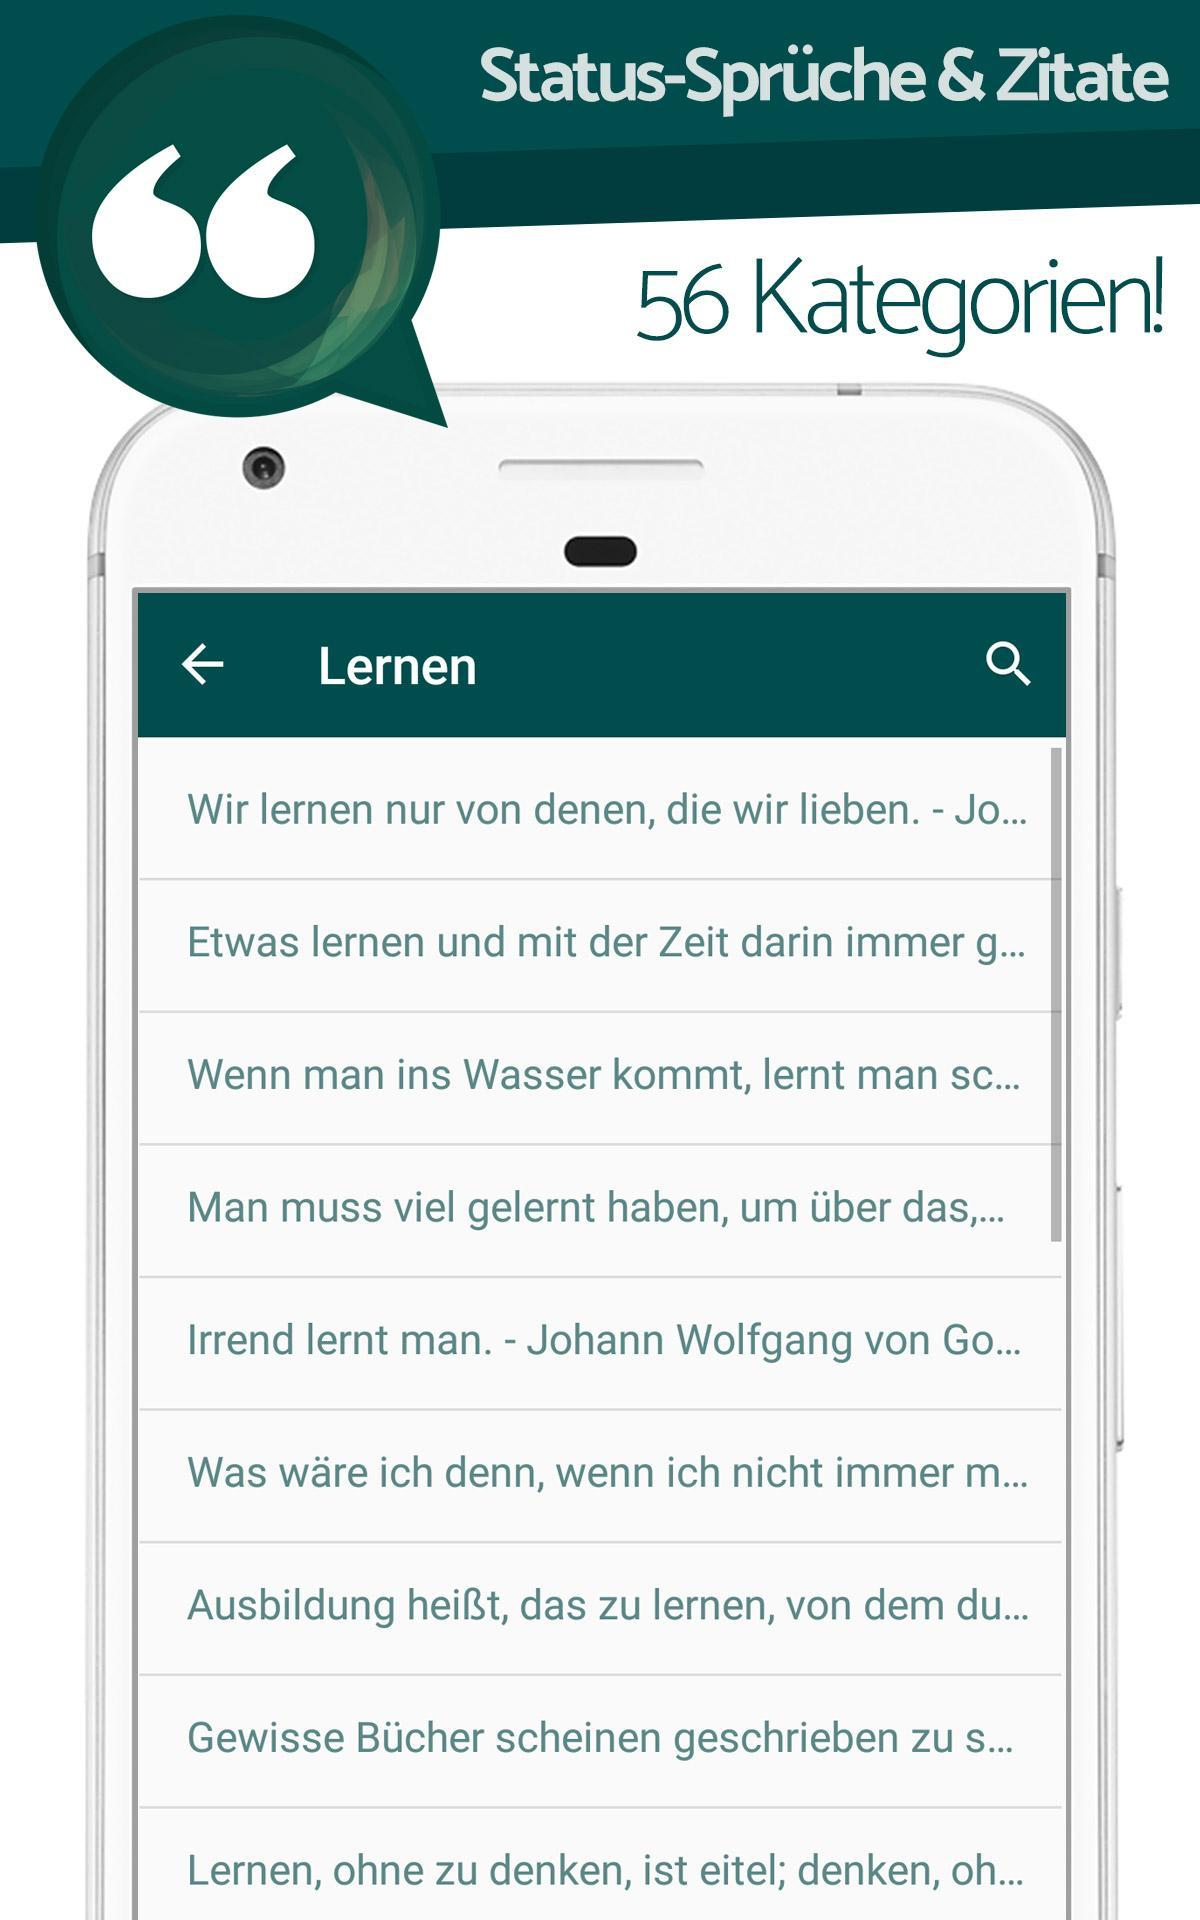 Status Sprüche Zitate For Android Apk Download